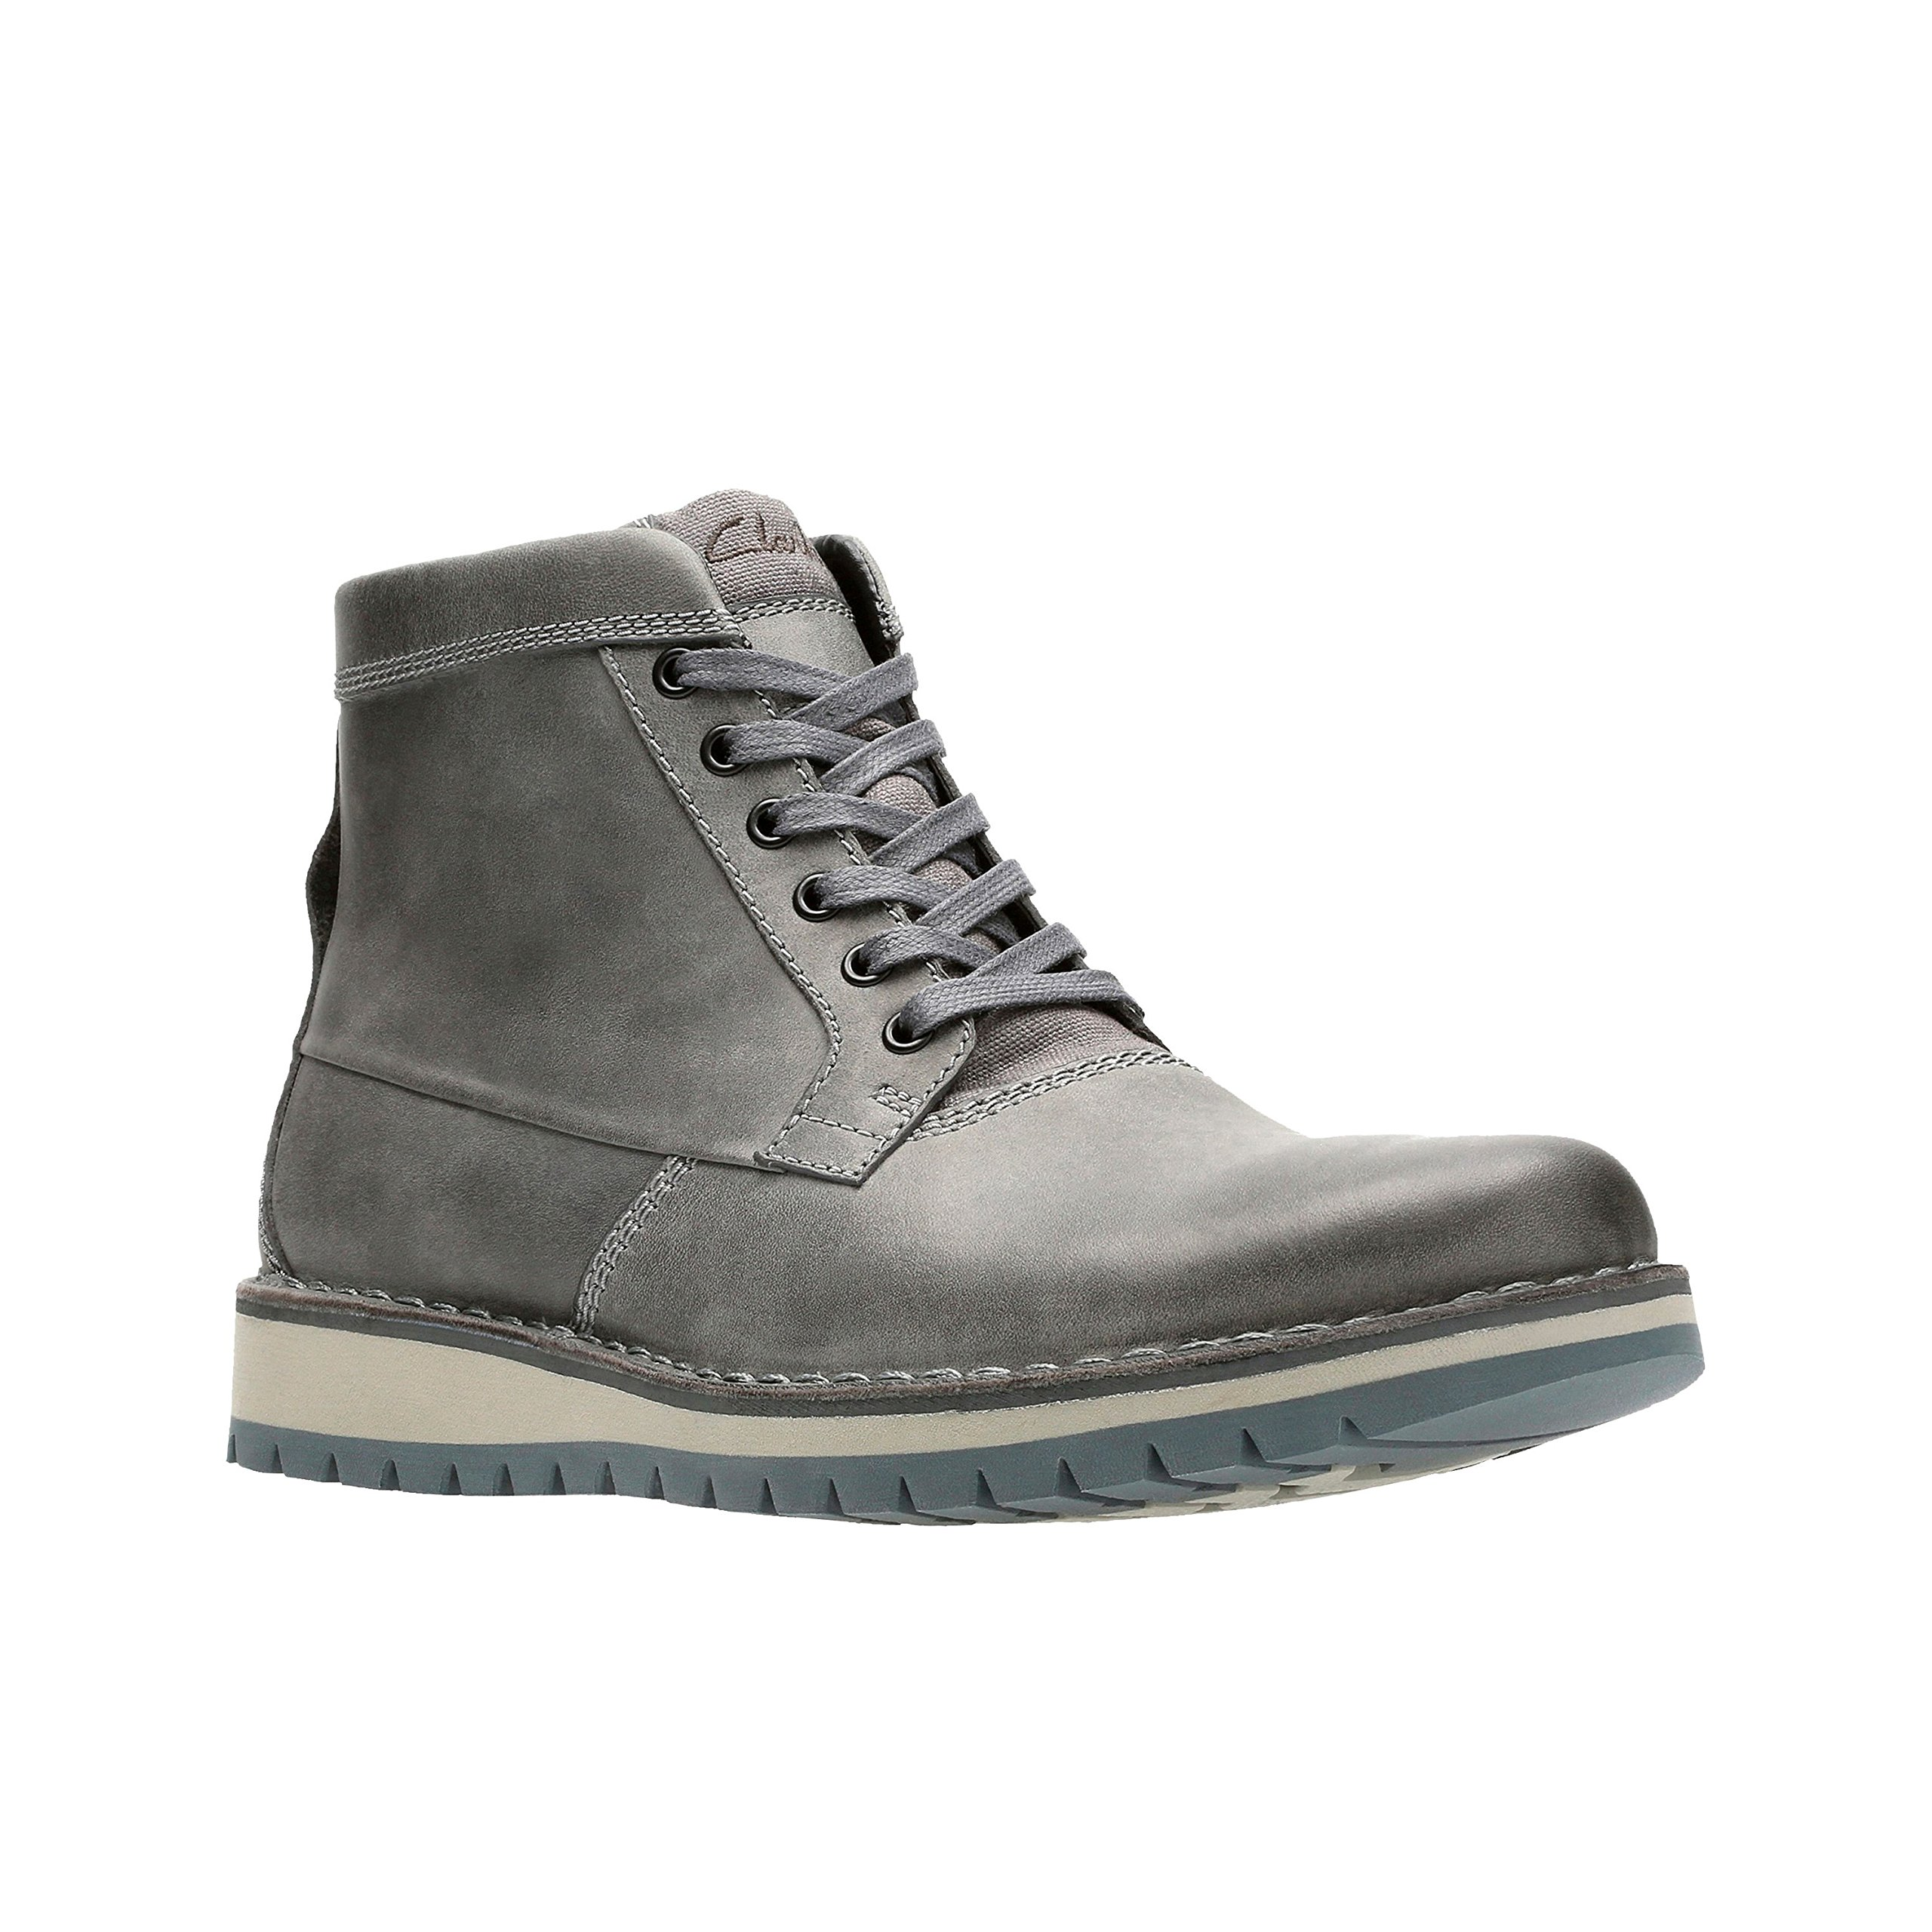 Clarks Varby Top Mens Lace Up Ankle Boots Dark Grey Leather 11.5